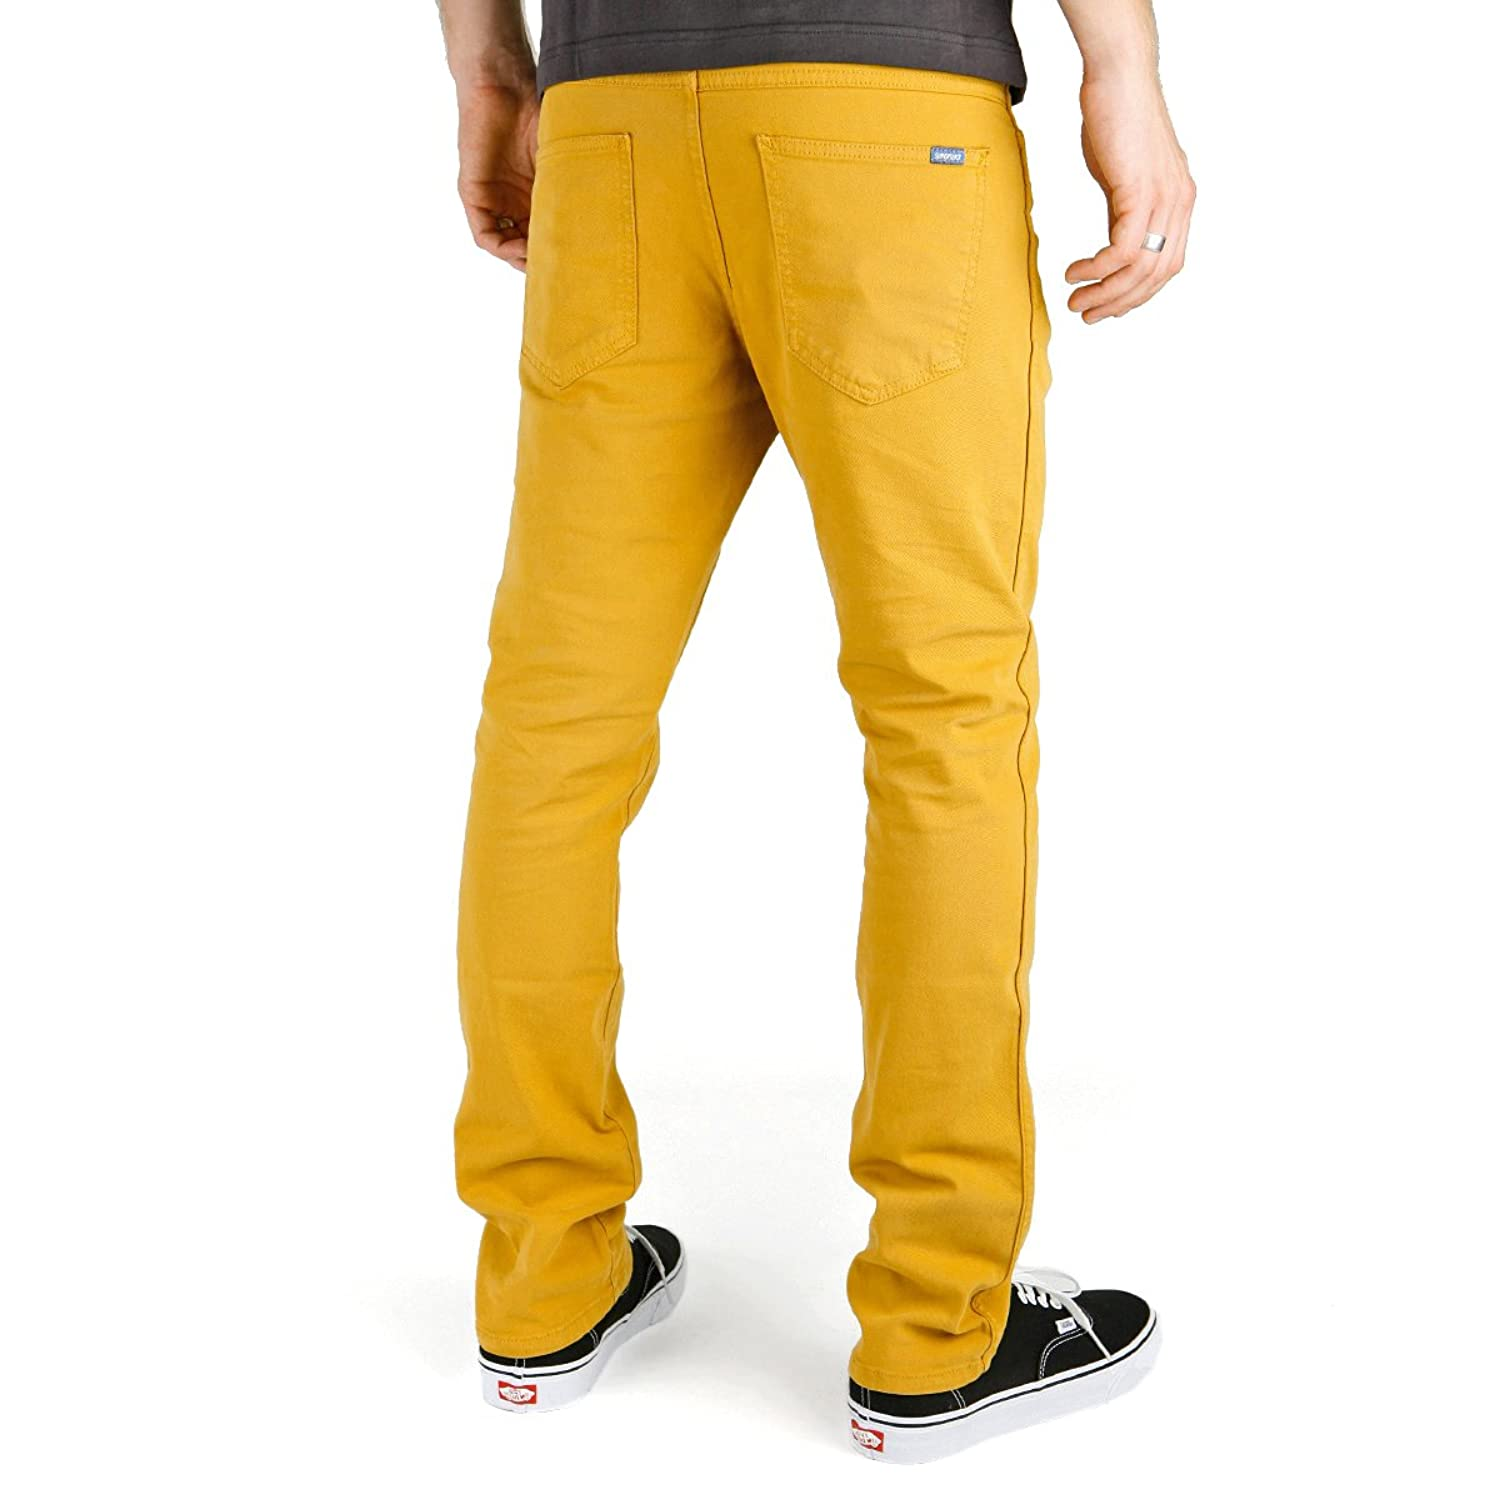 Superslick Tight Color Pant Slim Jeans Mustard Yel: Amazon.de: Bekleidung